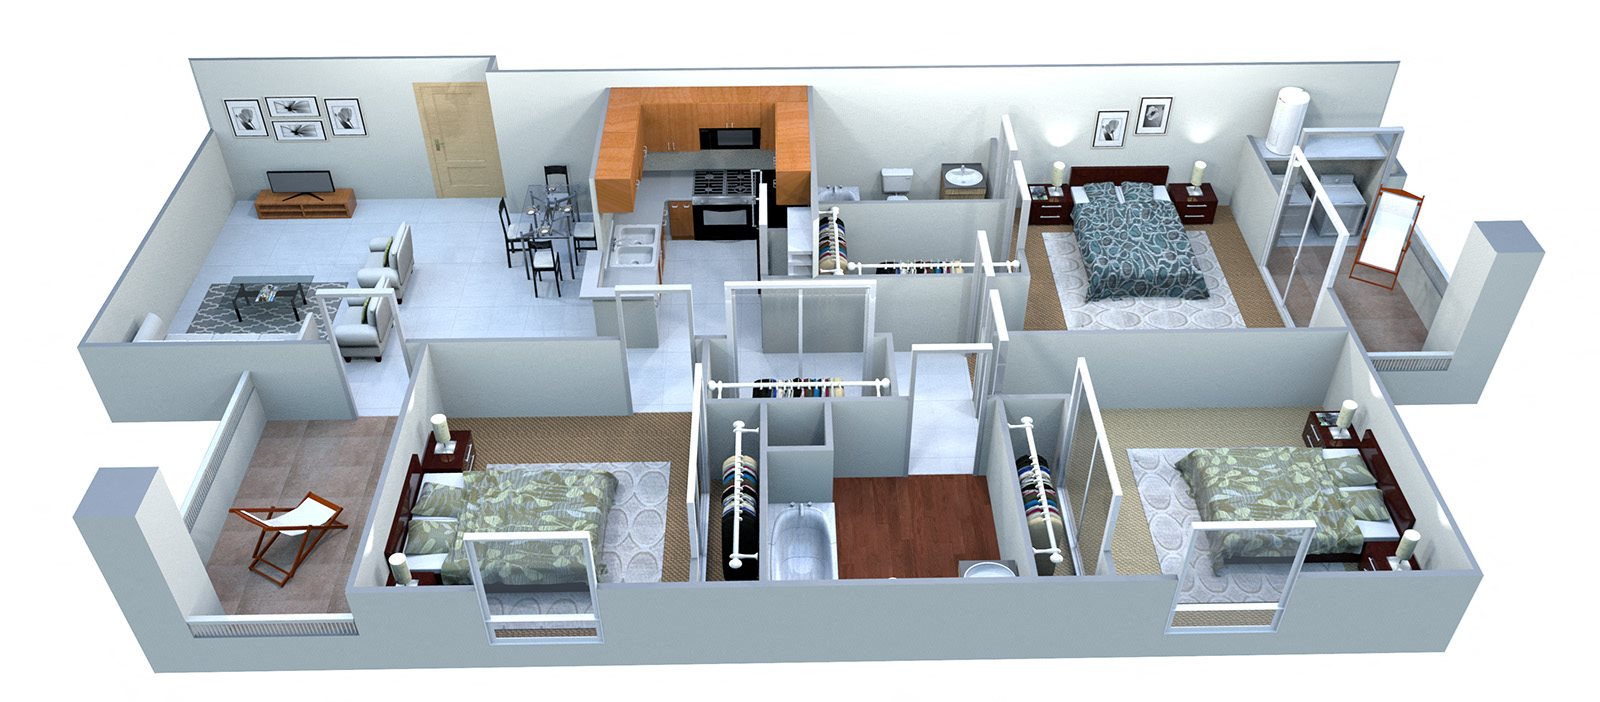 3A Three Bed Two Bath Floor Plan 4